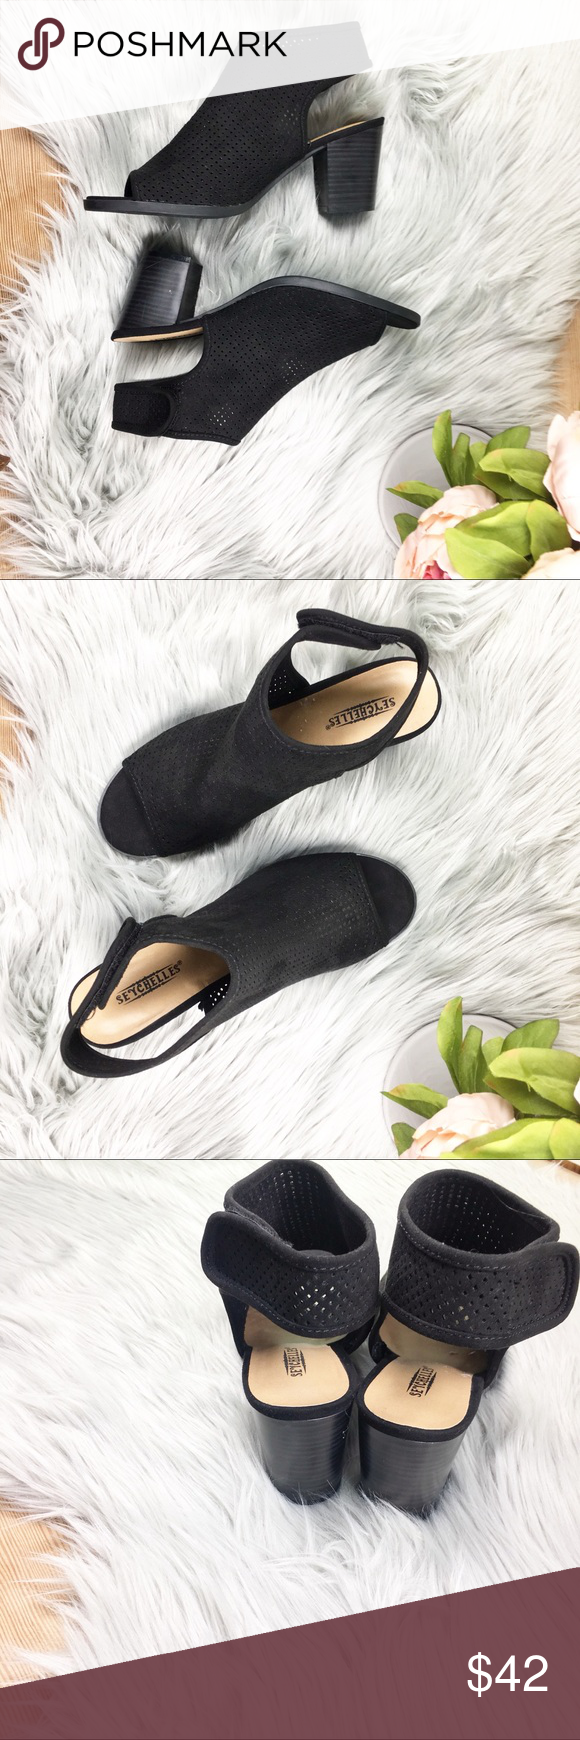 ec88cb12c4 ... new Seychelles open toe sandal with slingback and velcro closure. strap  adds an athleisure touch to these very modern and practical shoe. heel  heigh 3